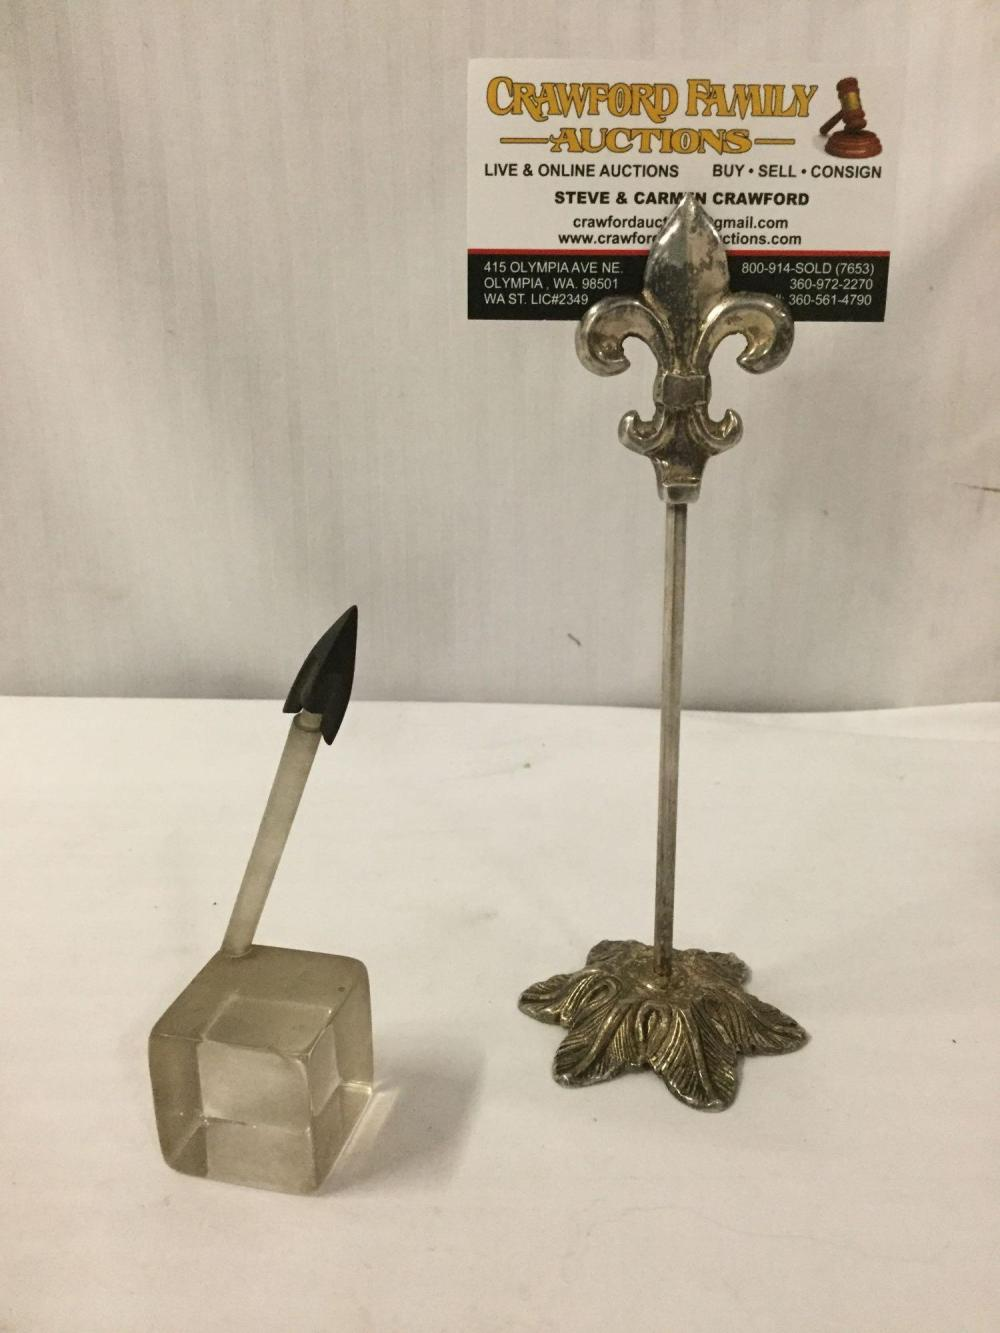 Antique Iron arrowhead having a raised mid-rib, includes plastic display stand